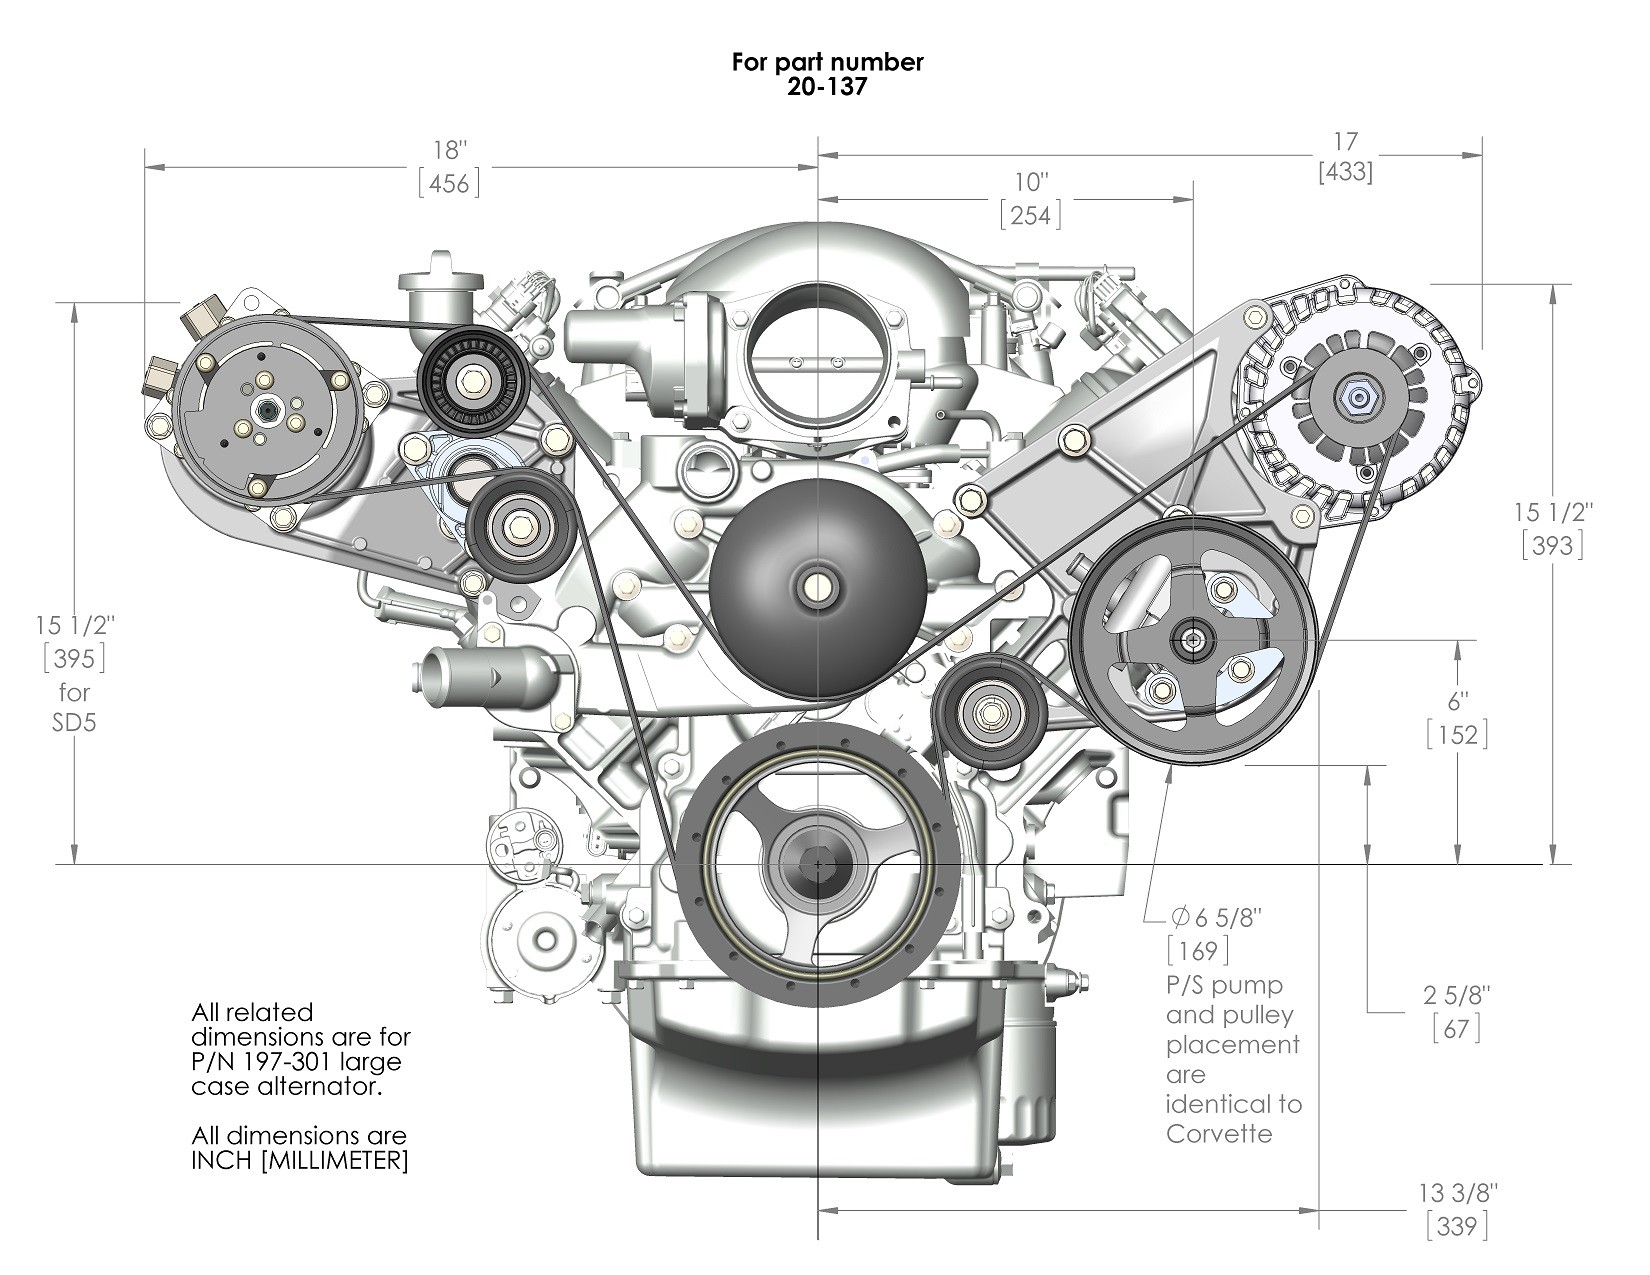 Car Undercarriage Diagram 20 137 Dimensions1 16501275 Ls Engines Pinterest Of